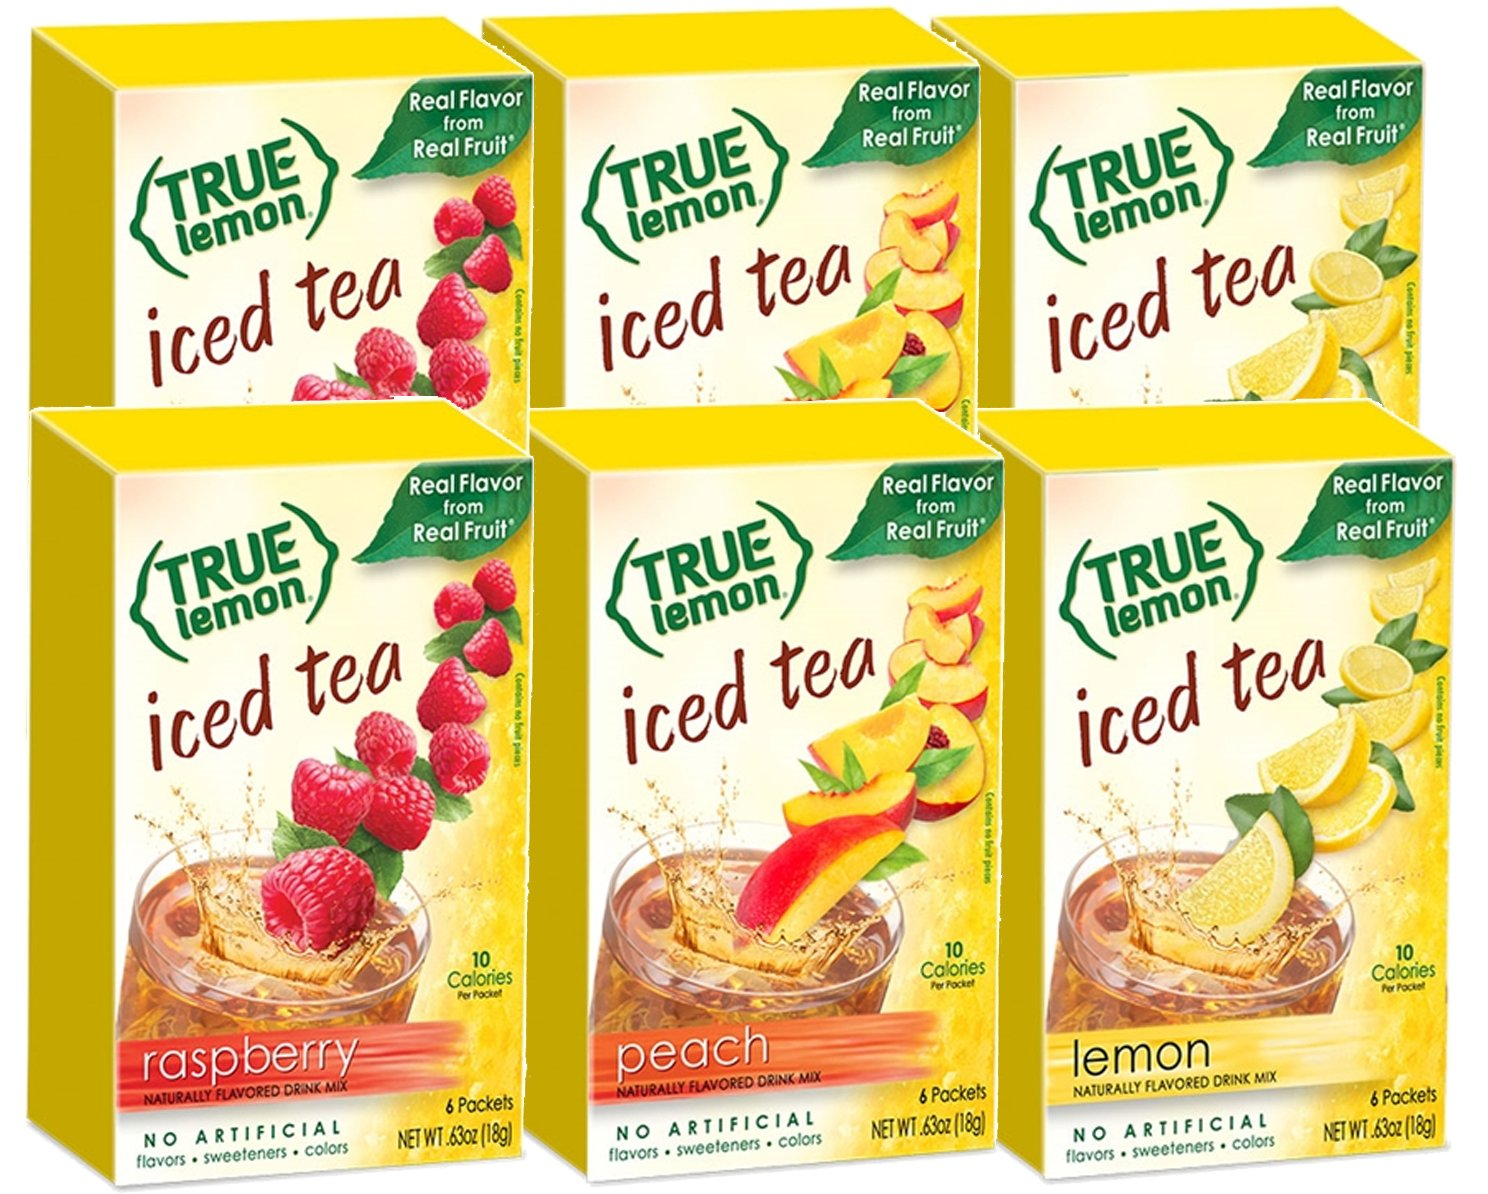 LEMON, RASPBERRY & PEACH ICED TEA MIX by TRUE LEMON | Instant Powdered Drink Packets That Quench YOUR Thirst, Kit Includes 2 Boxes each flavor (6bx total) of Mouth Watering True Citrus (ICED TEA)